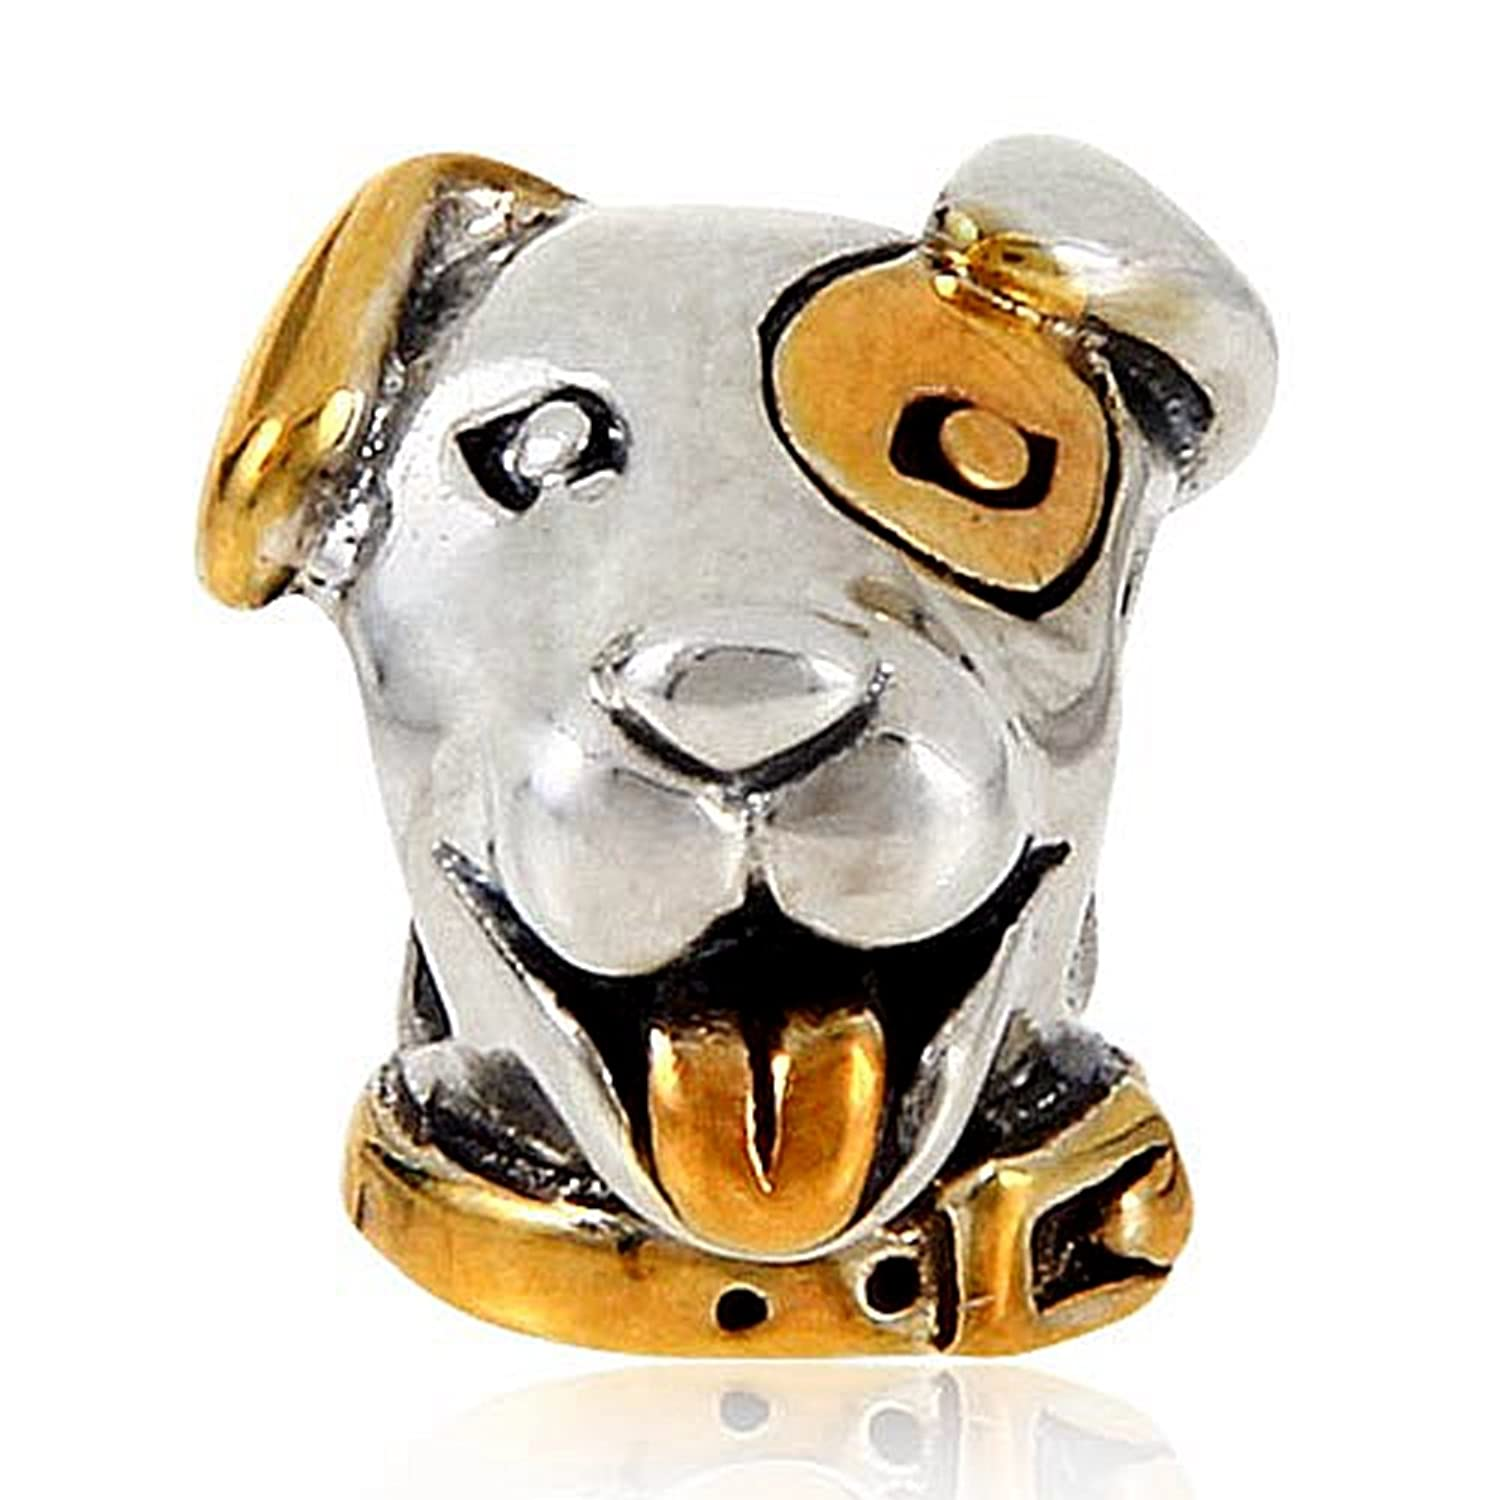 Luckybeads Gold Plated Lucky Dog Beads Charm Original 100% Authentic 925 Sterling Silver Beads fit for DIY Charms Bracelets